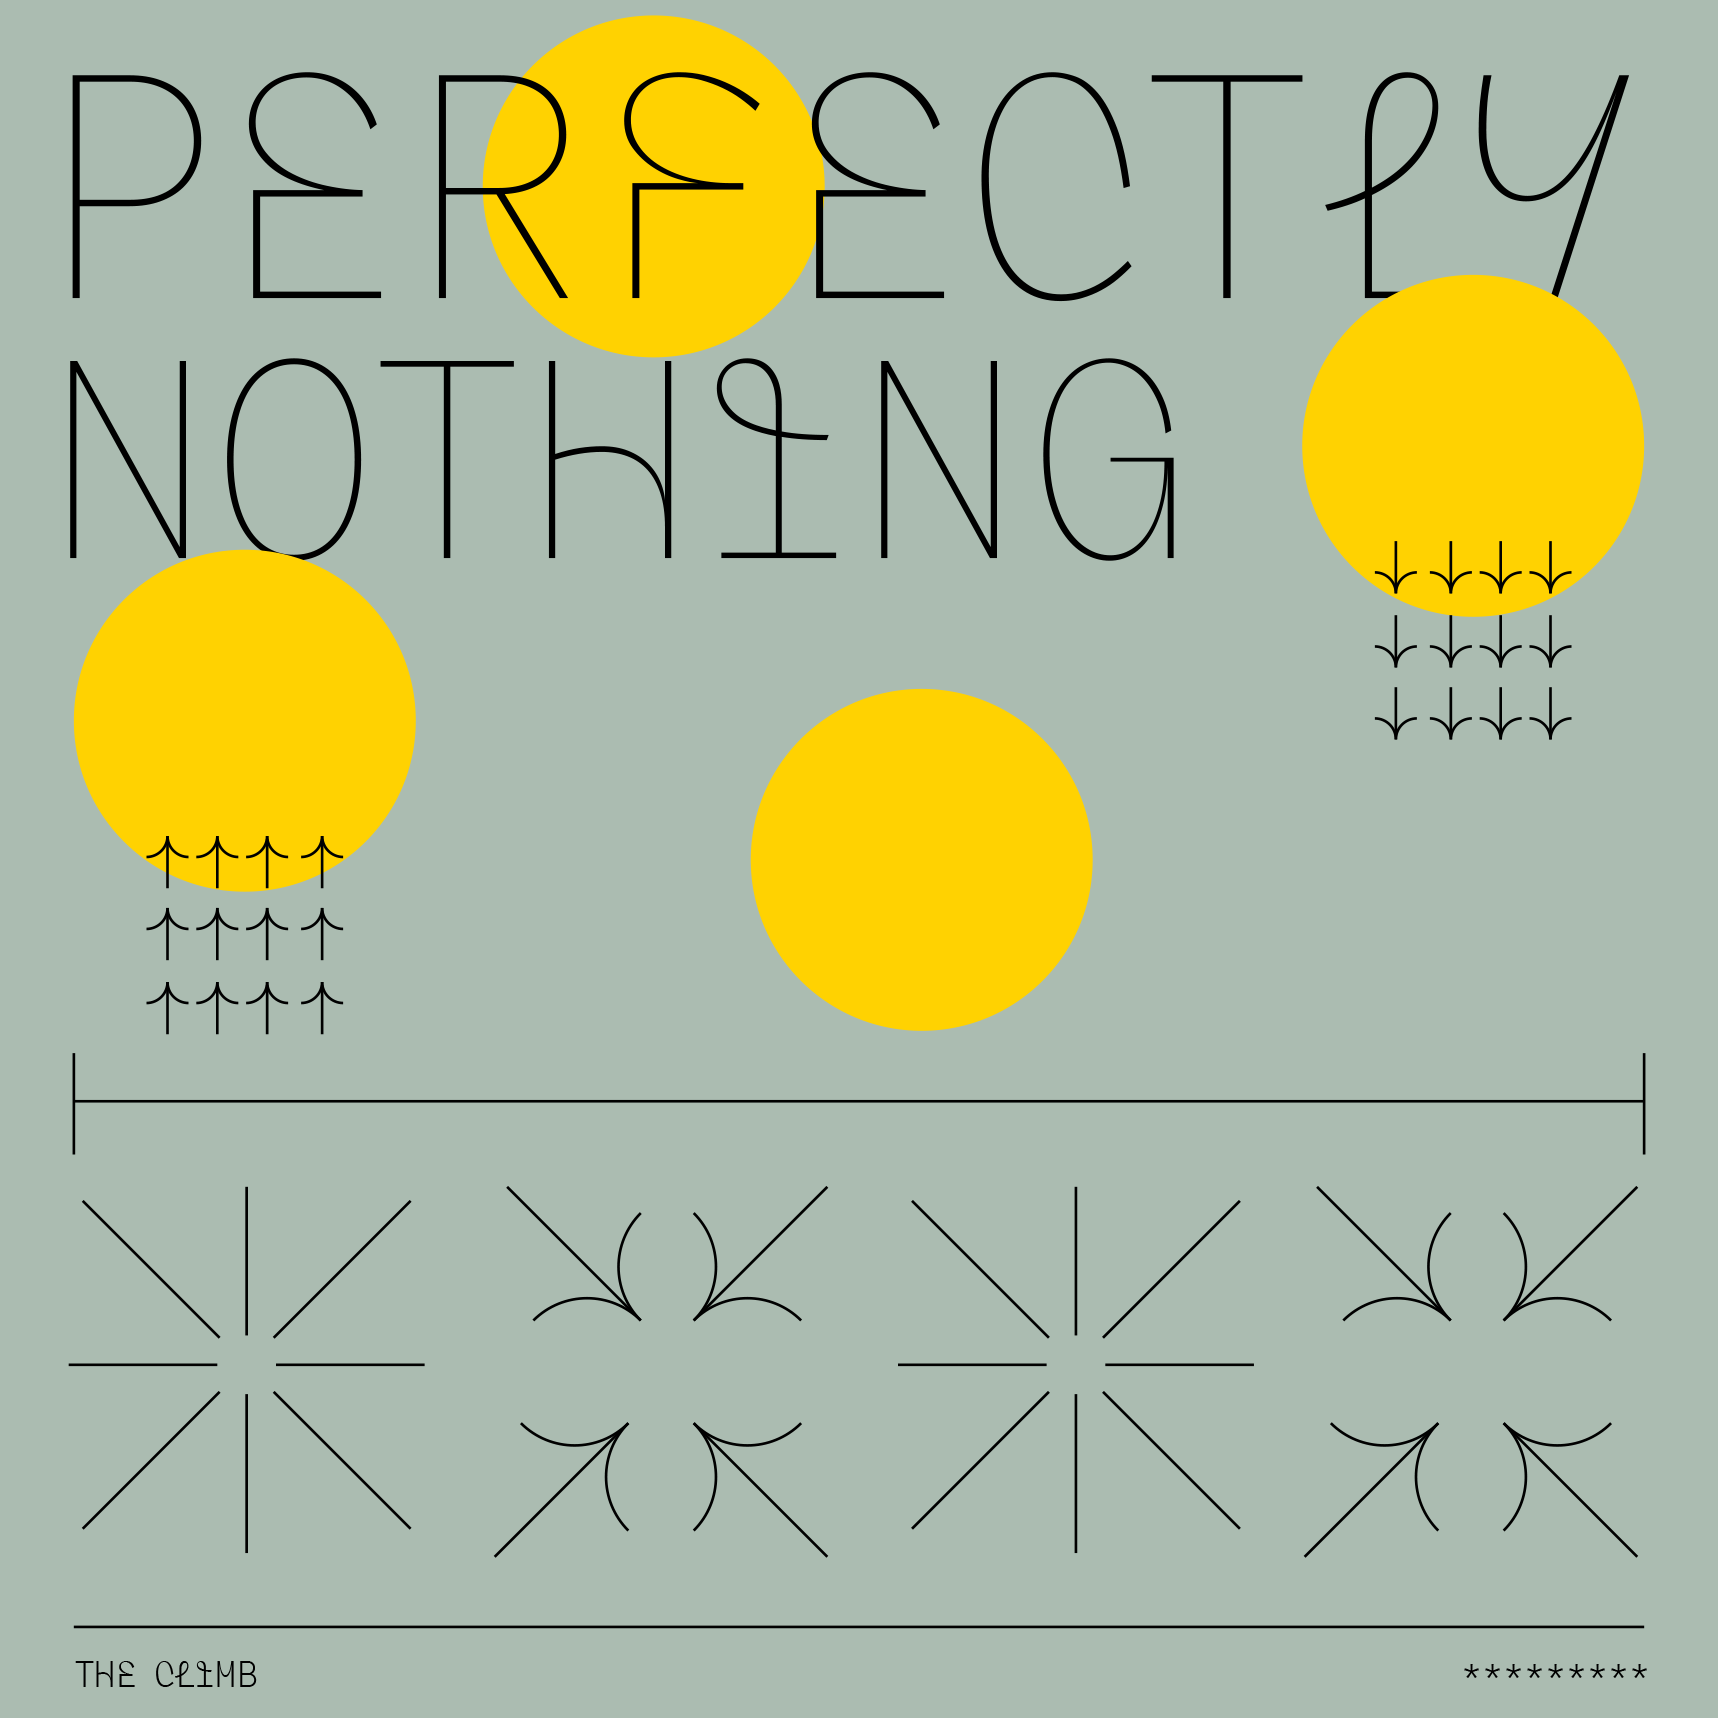 PerfectlyNothing